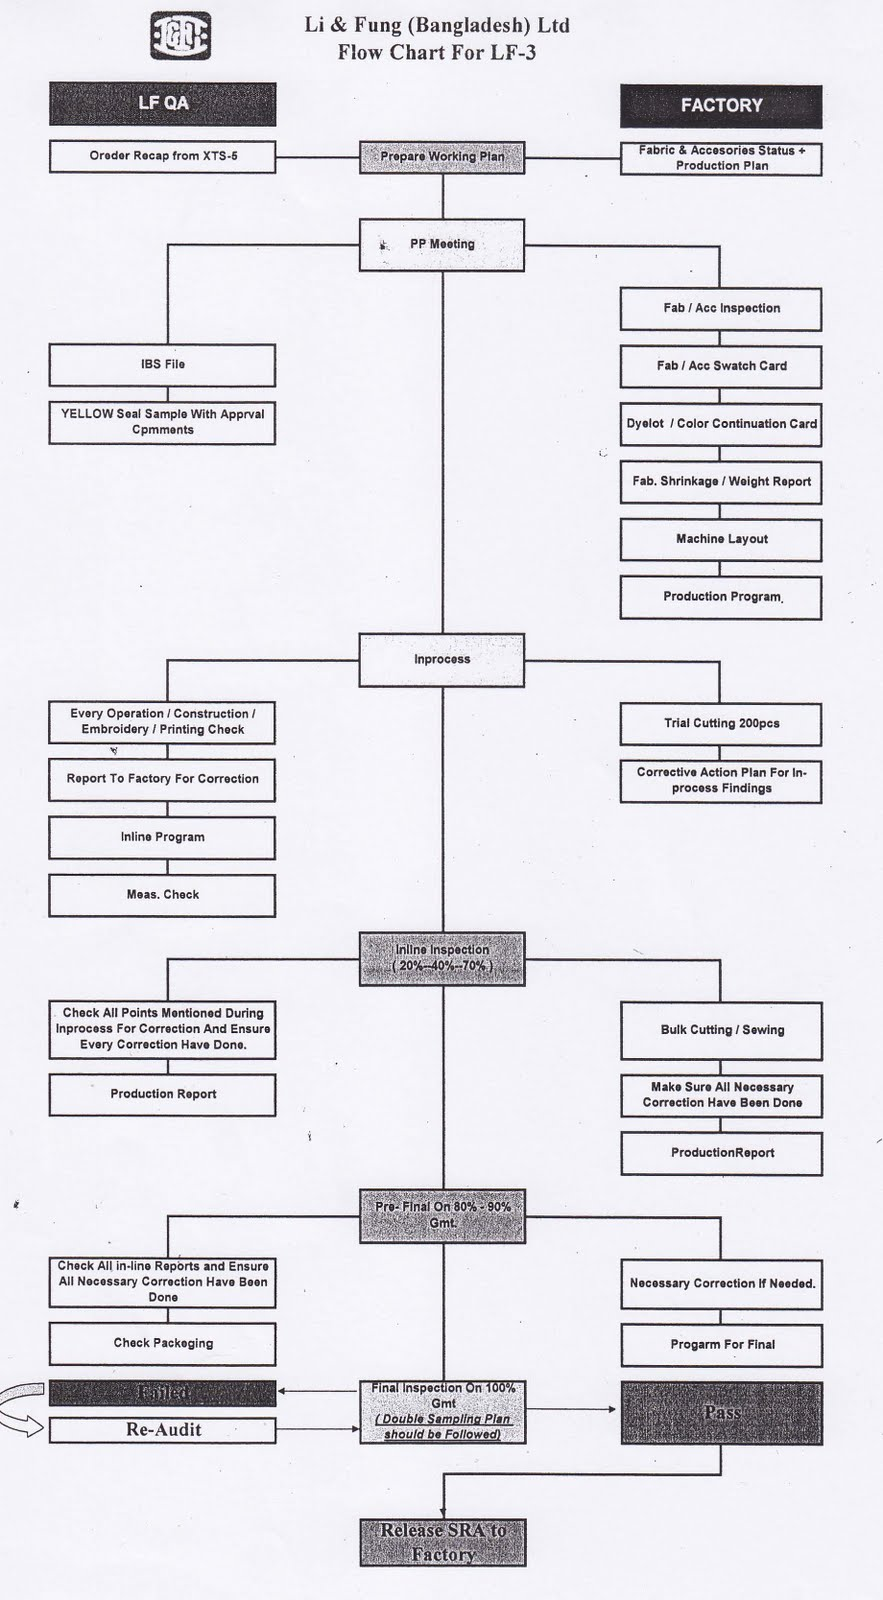 azmol u0026 39 s blog  flow chart of quality department with supplier